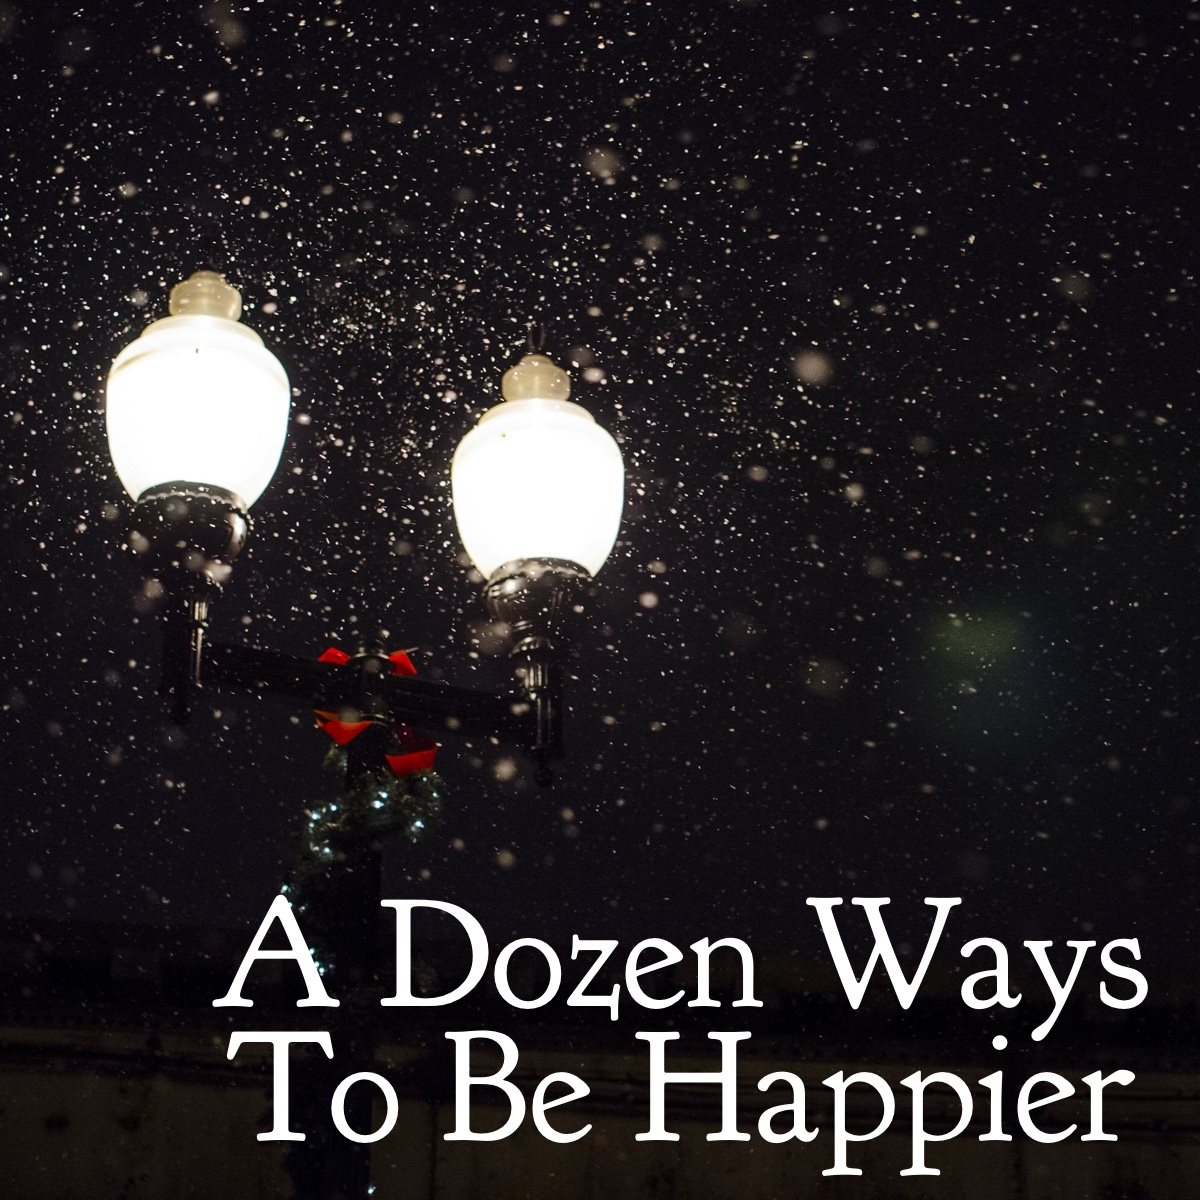 A Dozen Ways to Be Happier